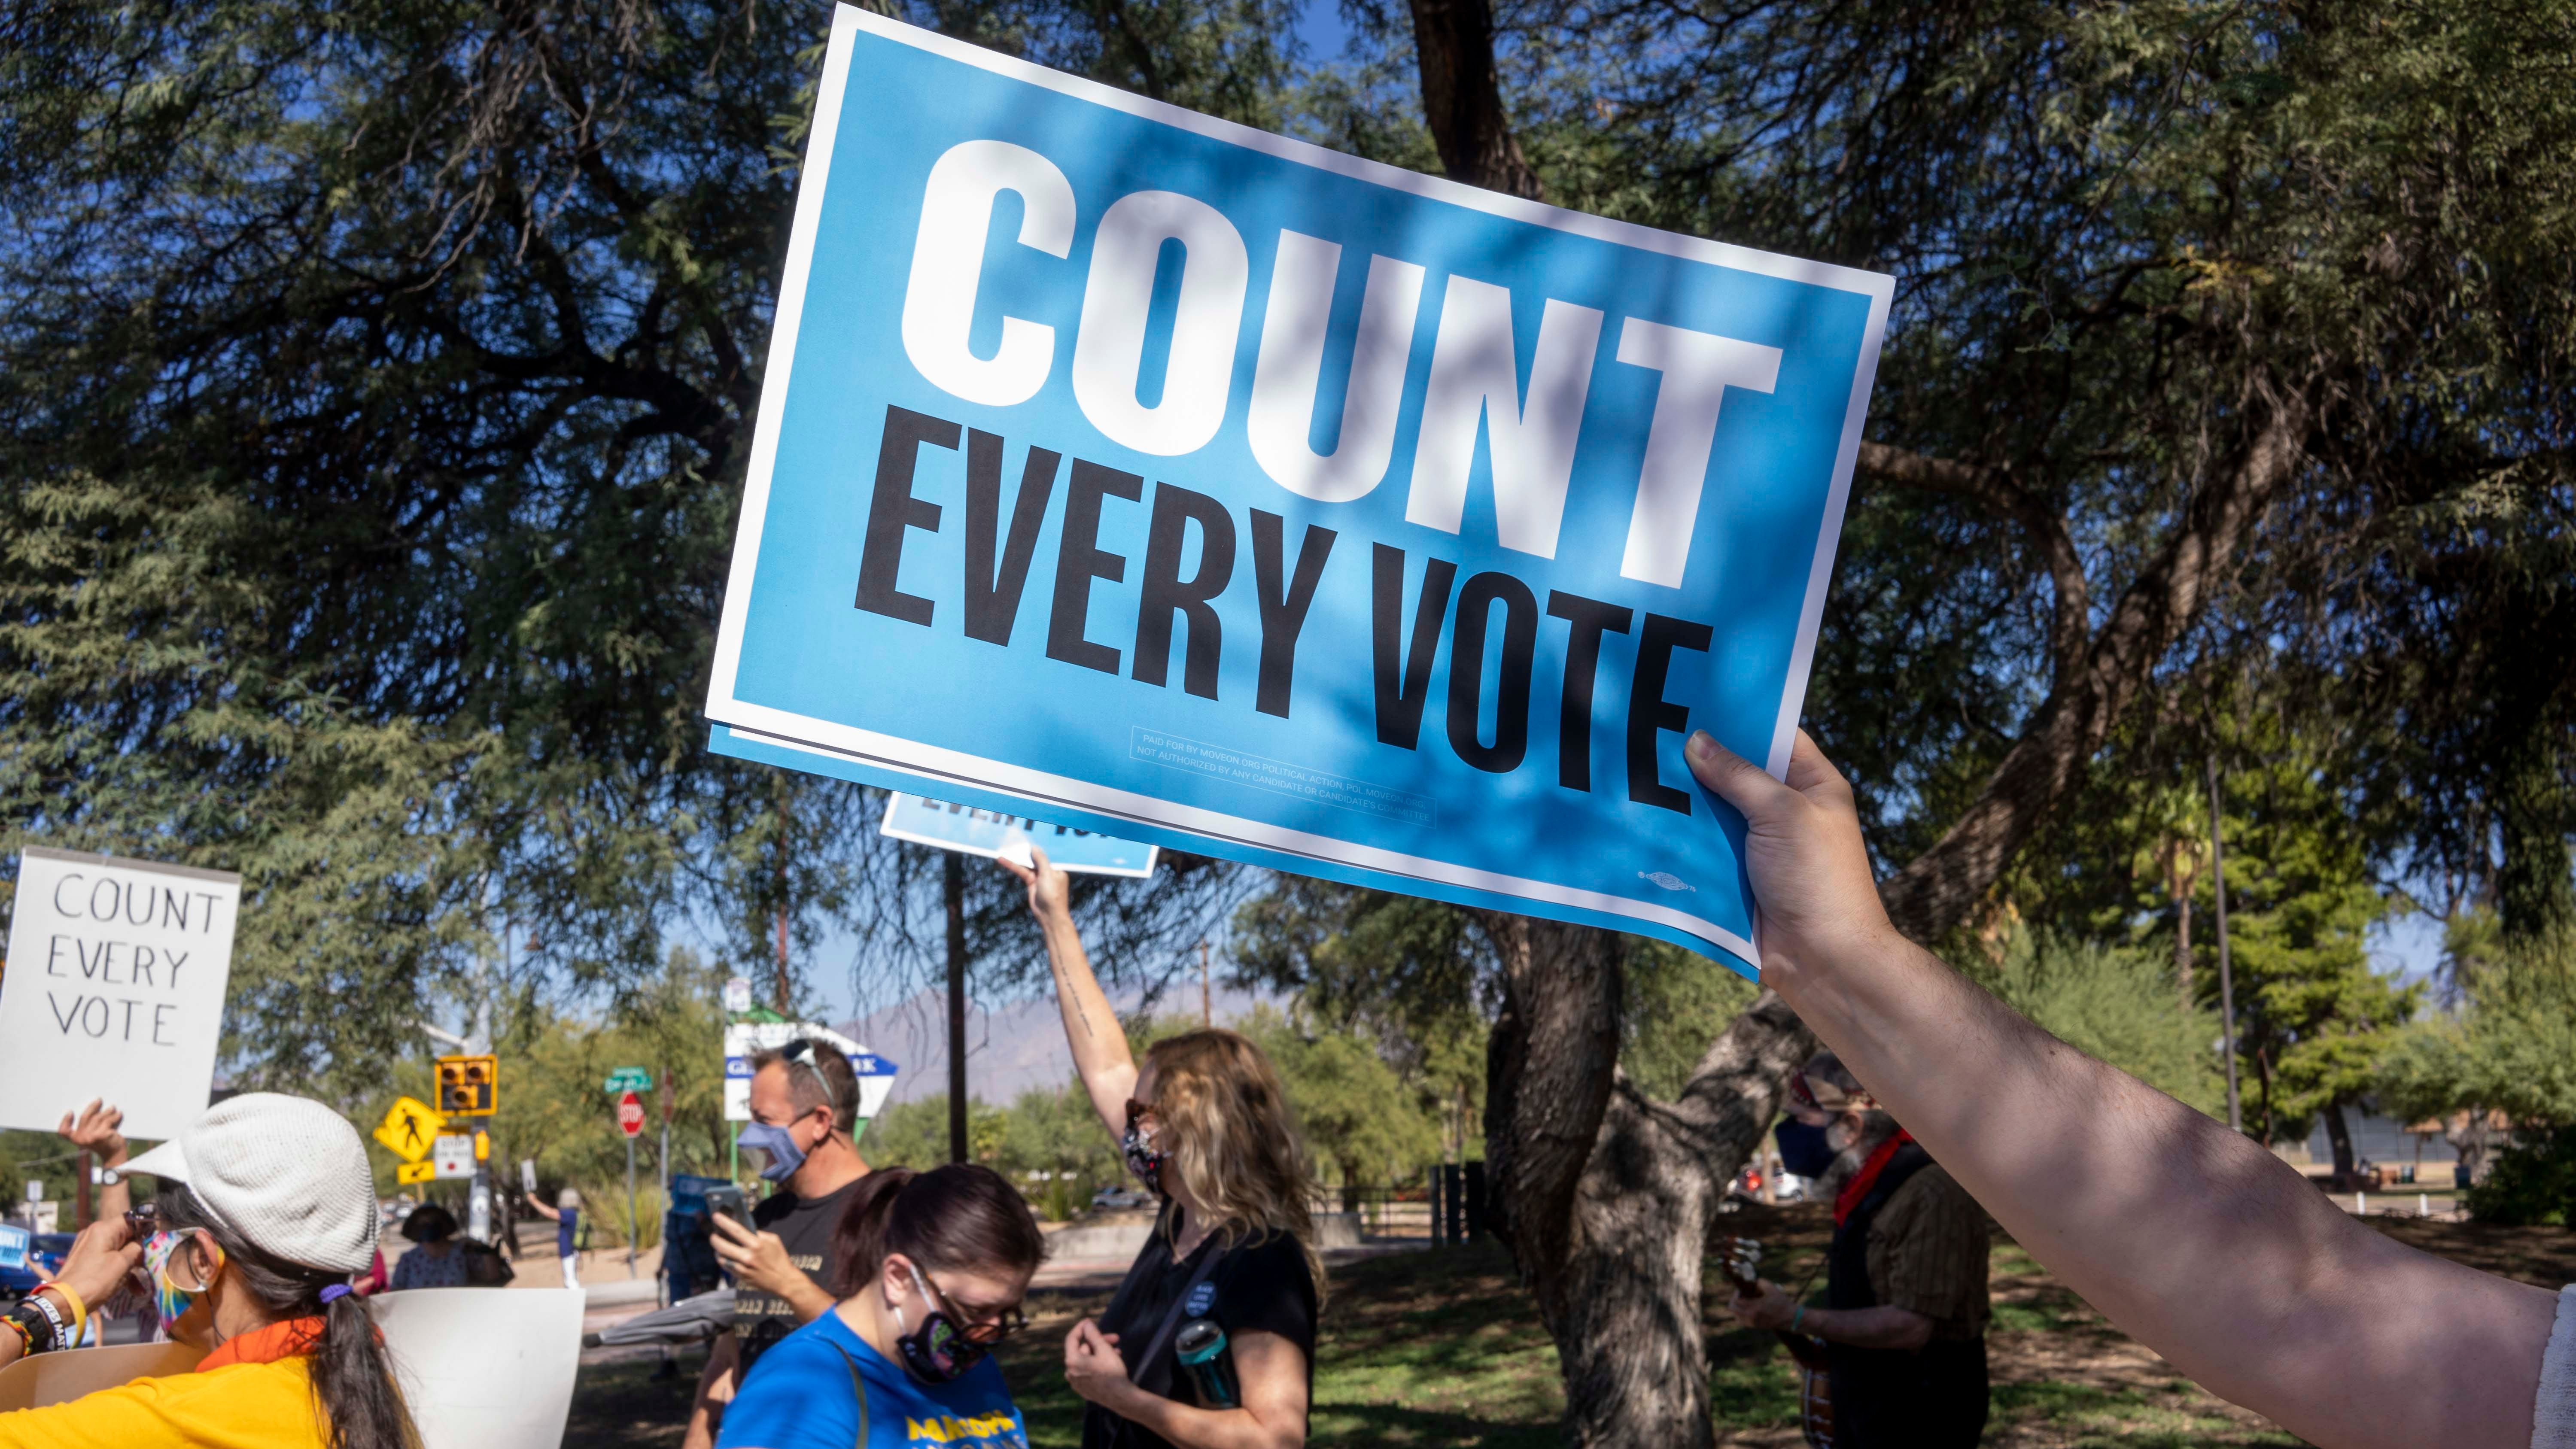 More than 50 people, mostly self-identified Democrats and supporters for Democratic candidate Joe Biden, gather for a rally in central Tucson on Nov. 4, 2020. They demanded that all votes cast in this year's presidential election be counted.